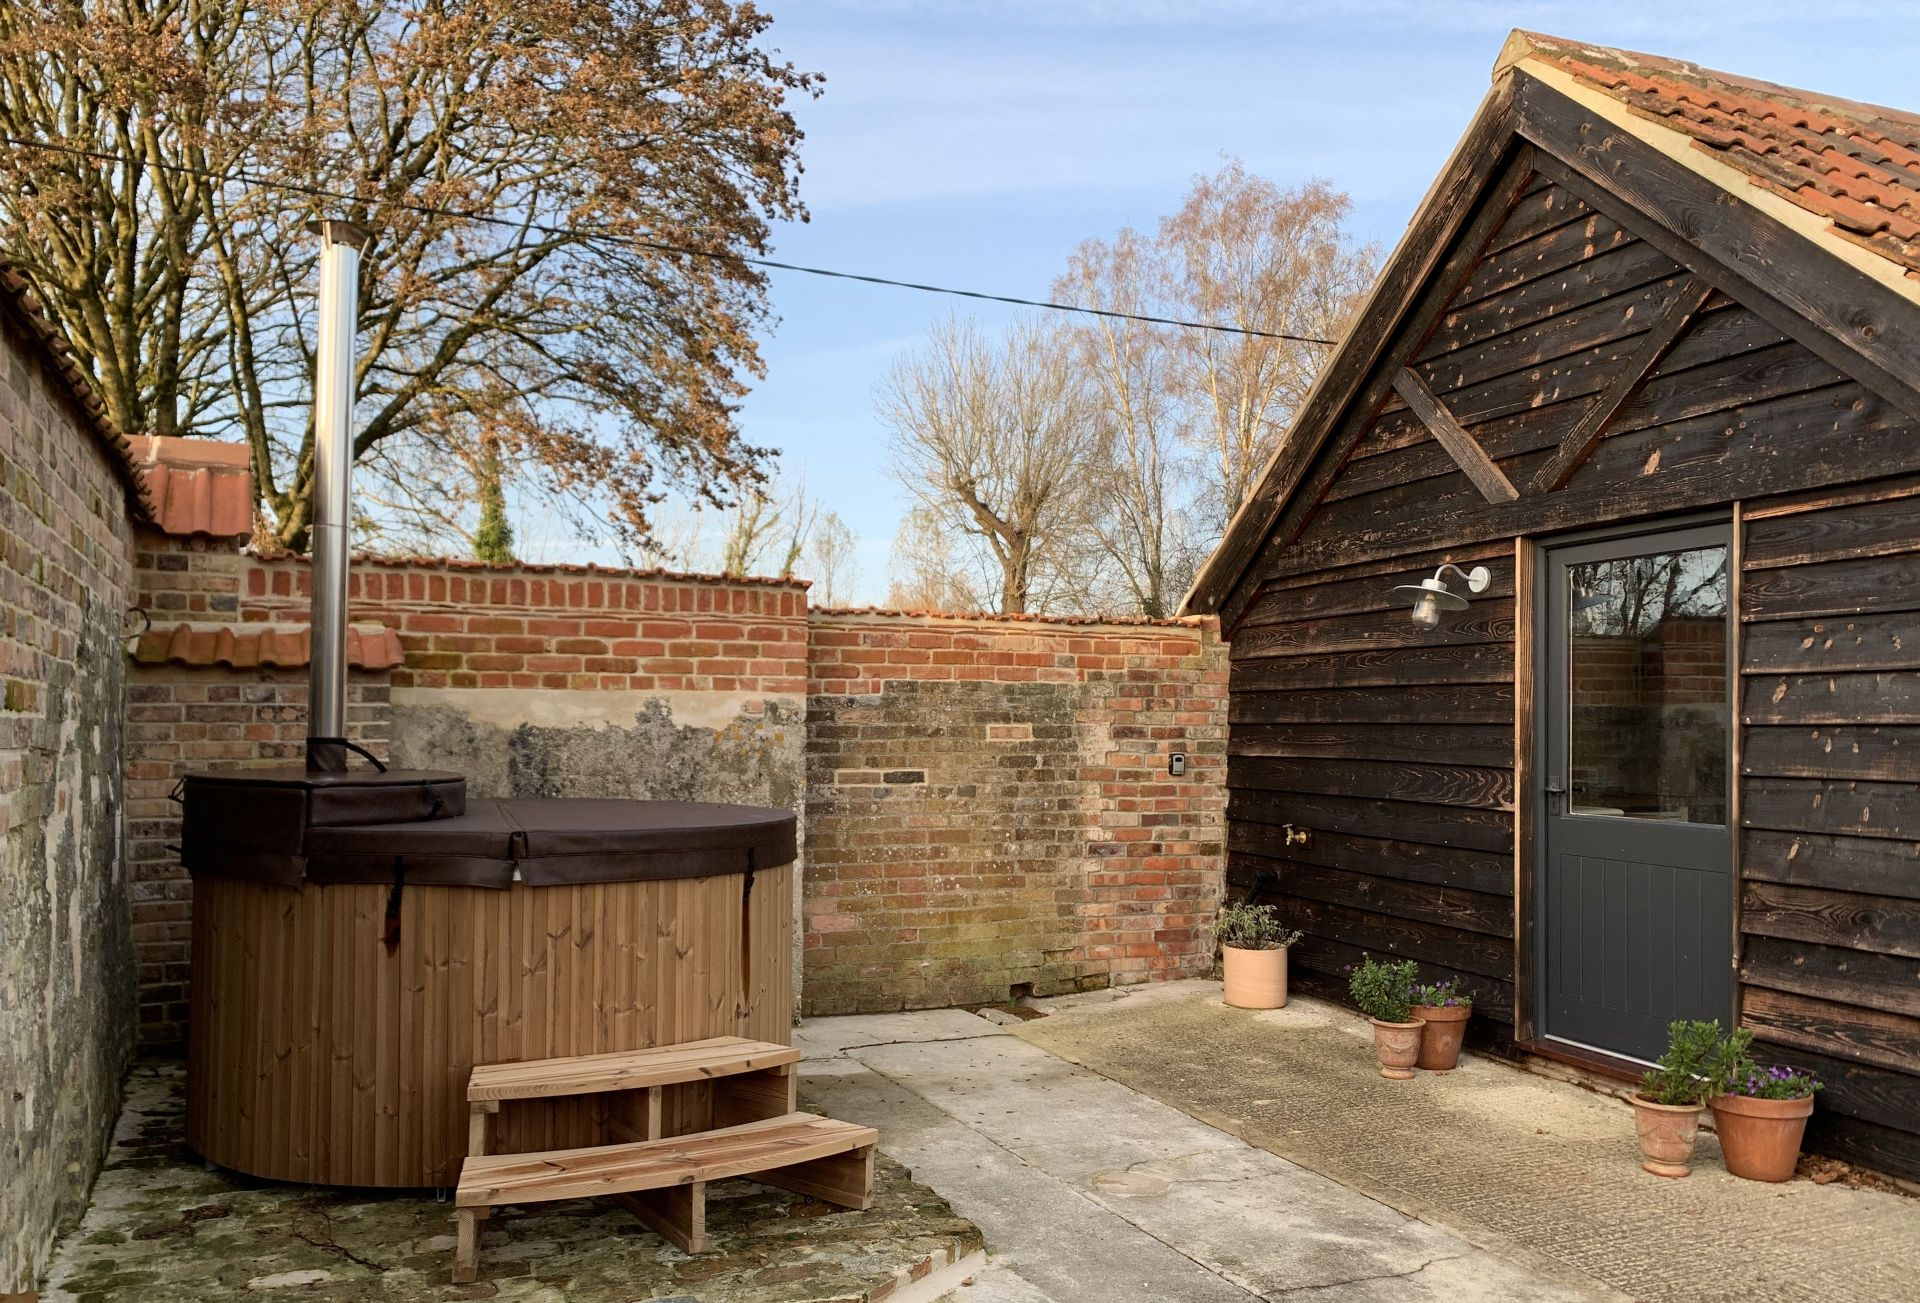 Click here for more about Park Farm Byre